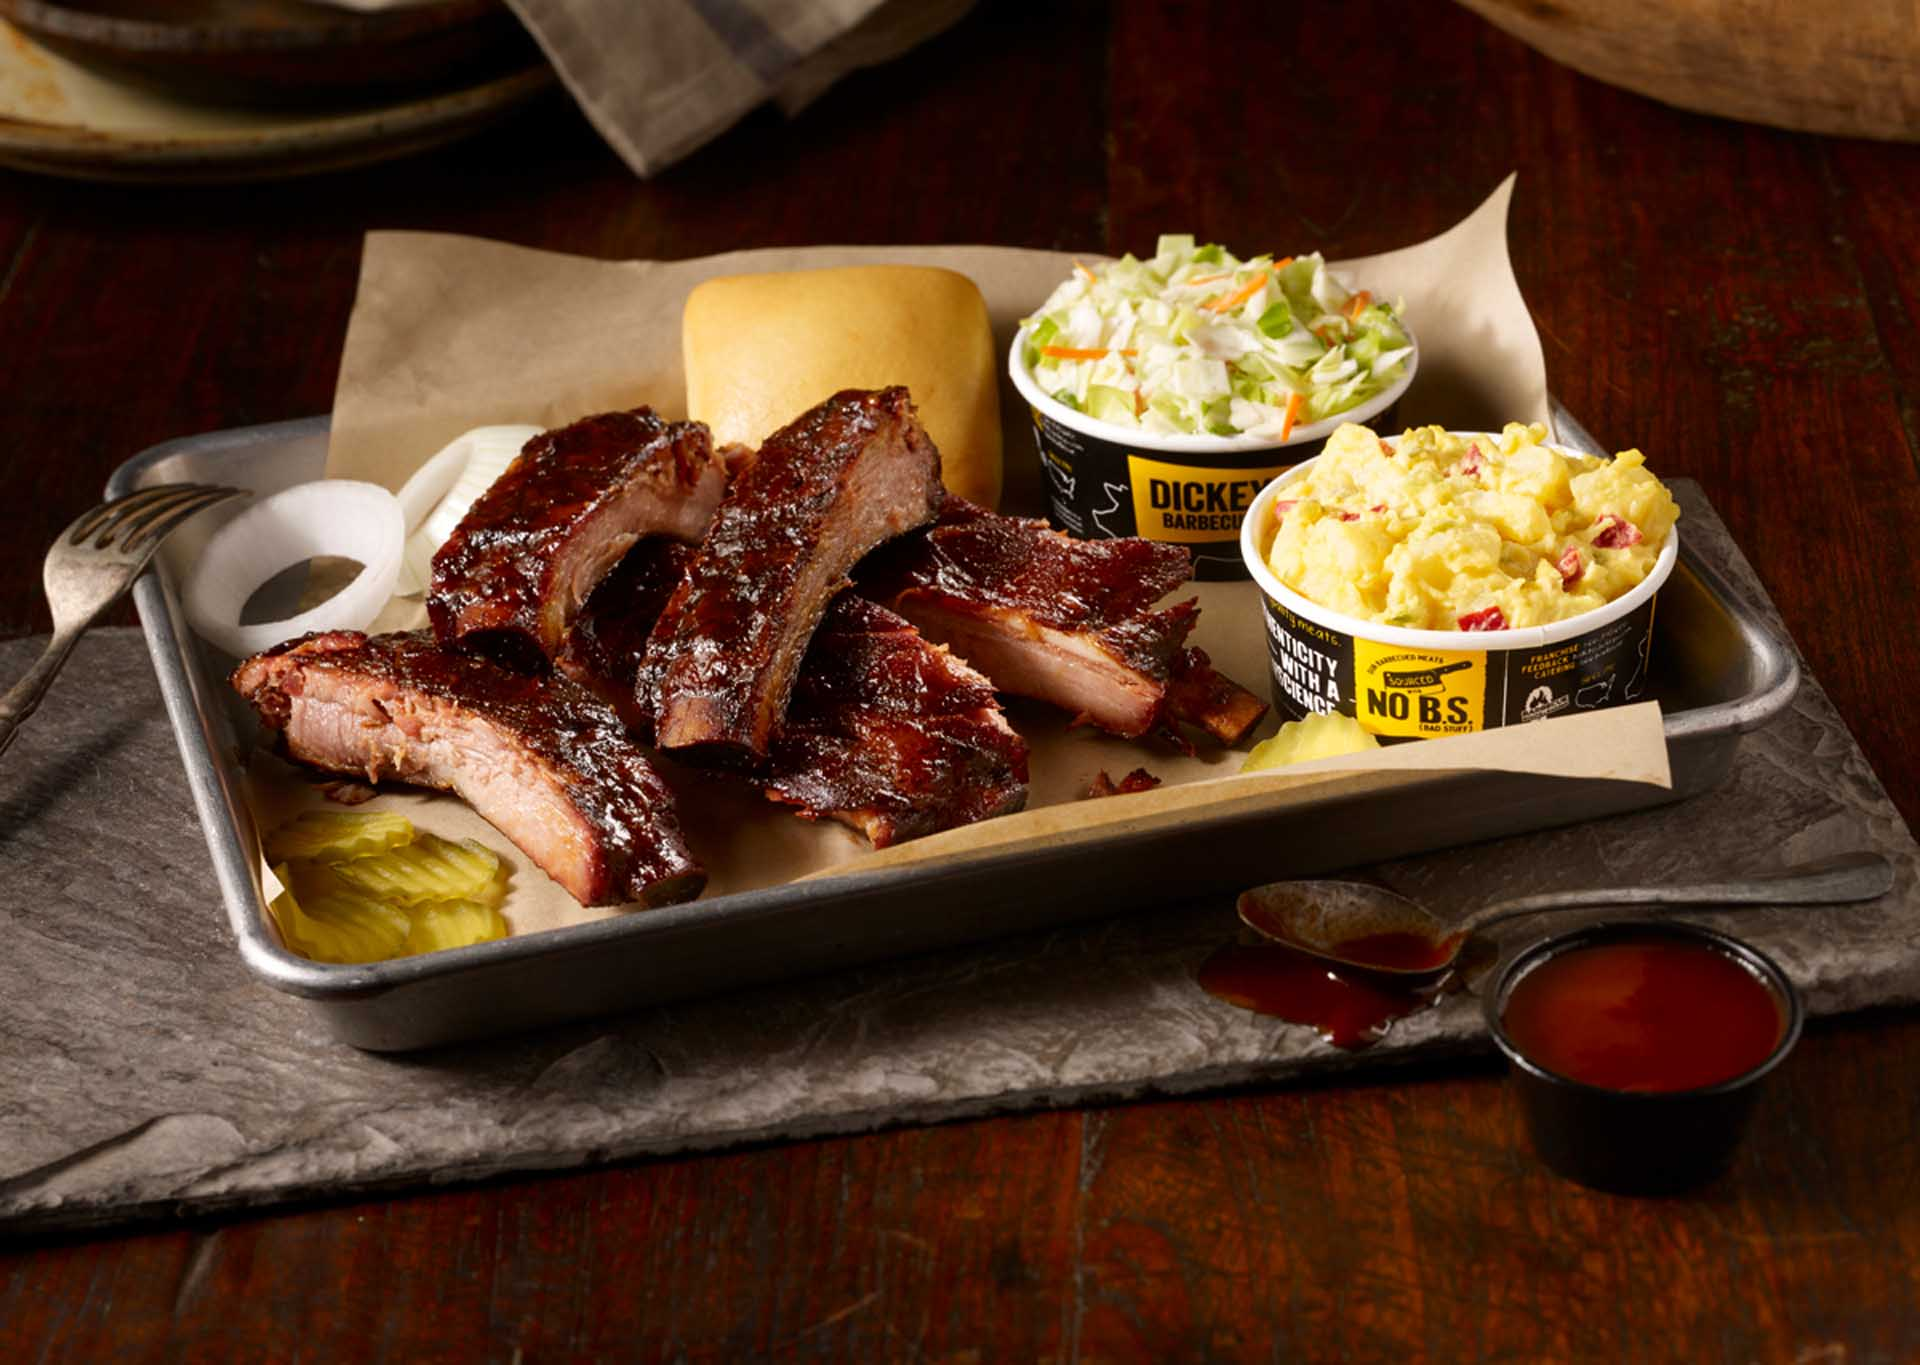 Volume One:Dickey's Barbecue Pit Features Southern BBQ